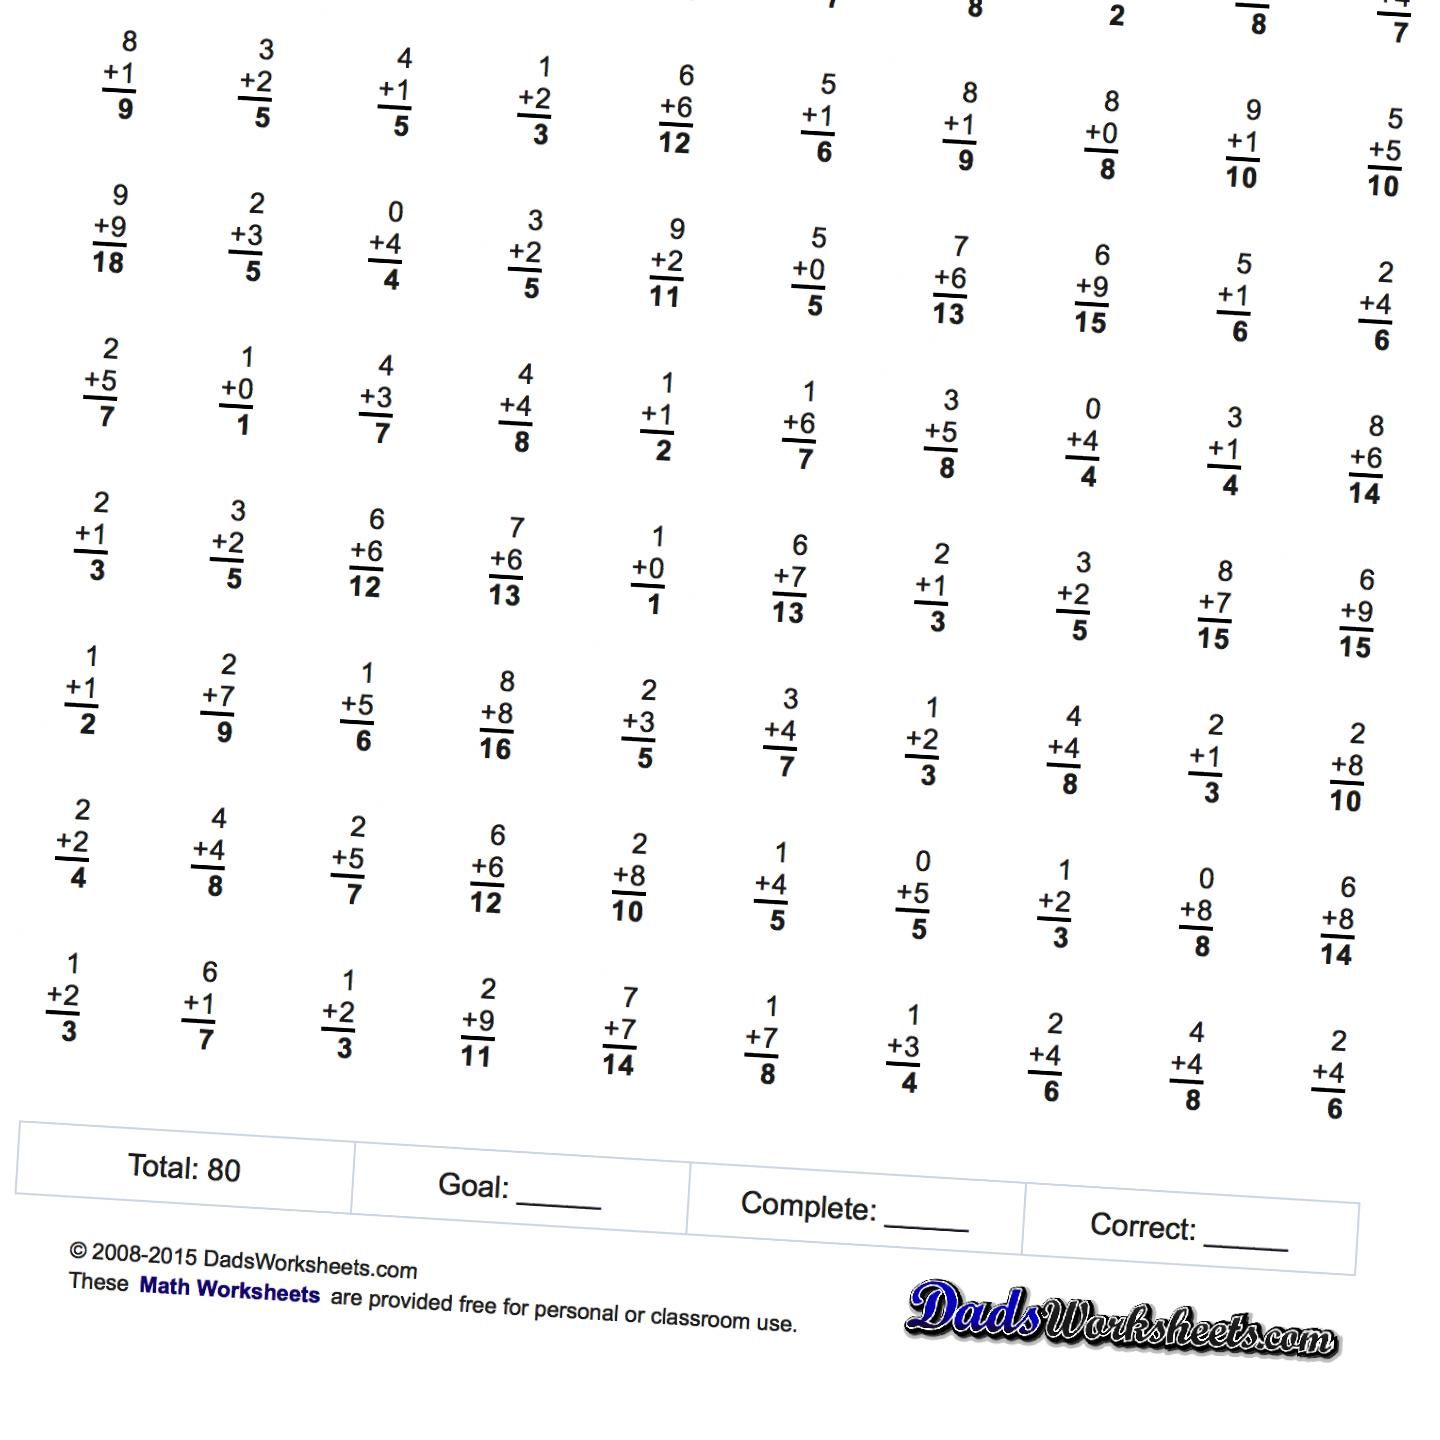 Math Worksheets: Two Minute Math Fact Addition Worksheets... These ...